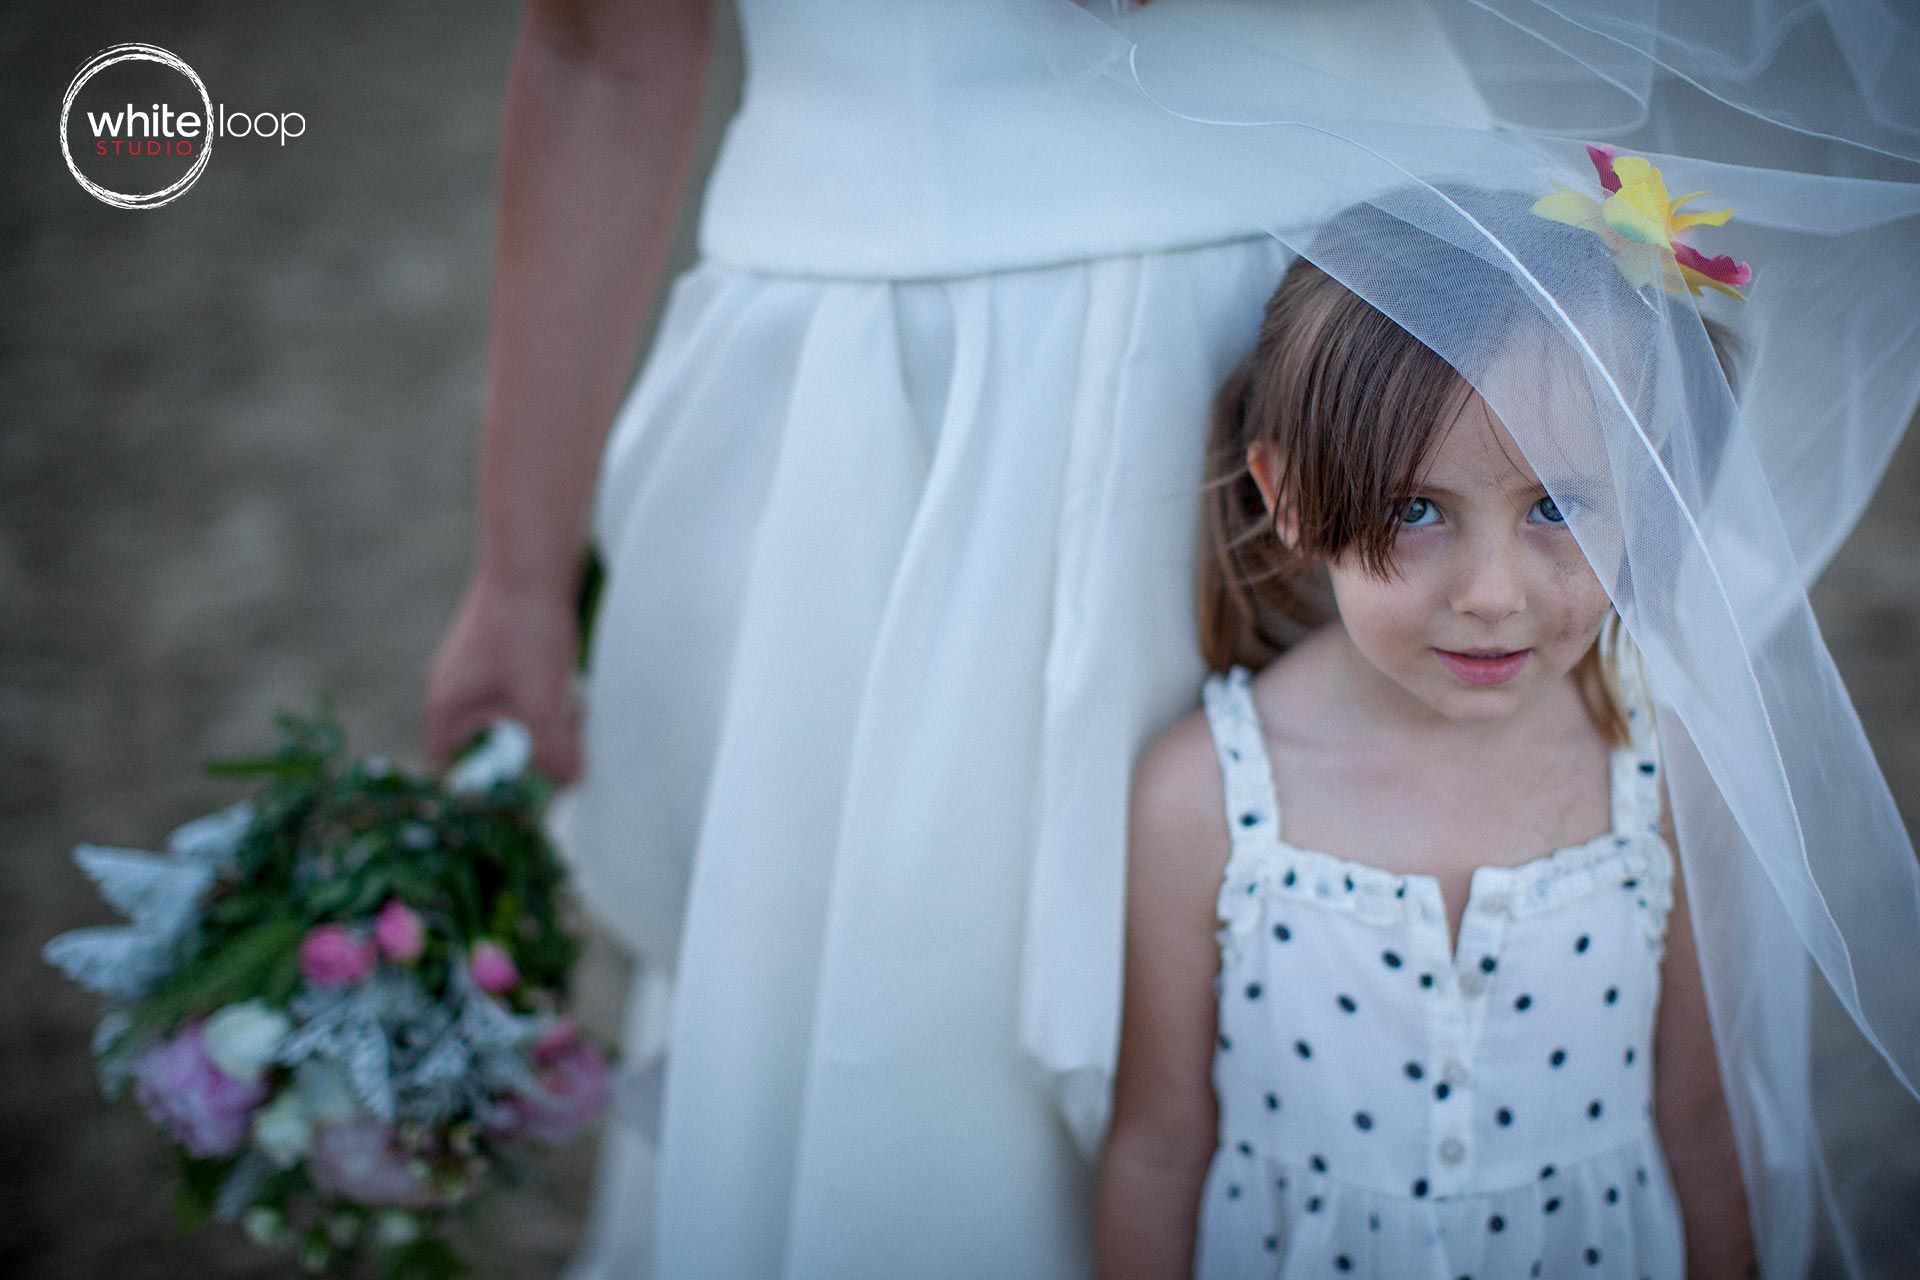 Here is a beautiful glance of a little girl under the vail of the bride just after playing on the beach.